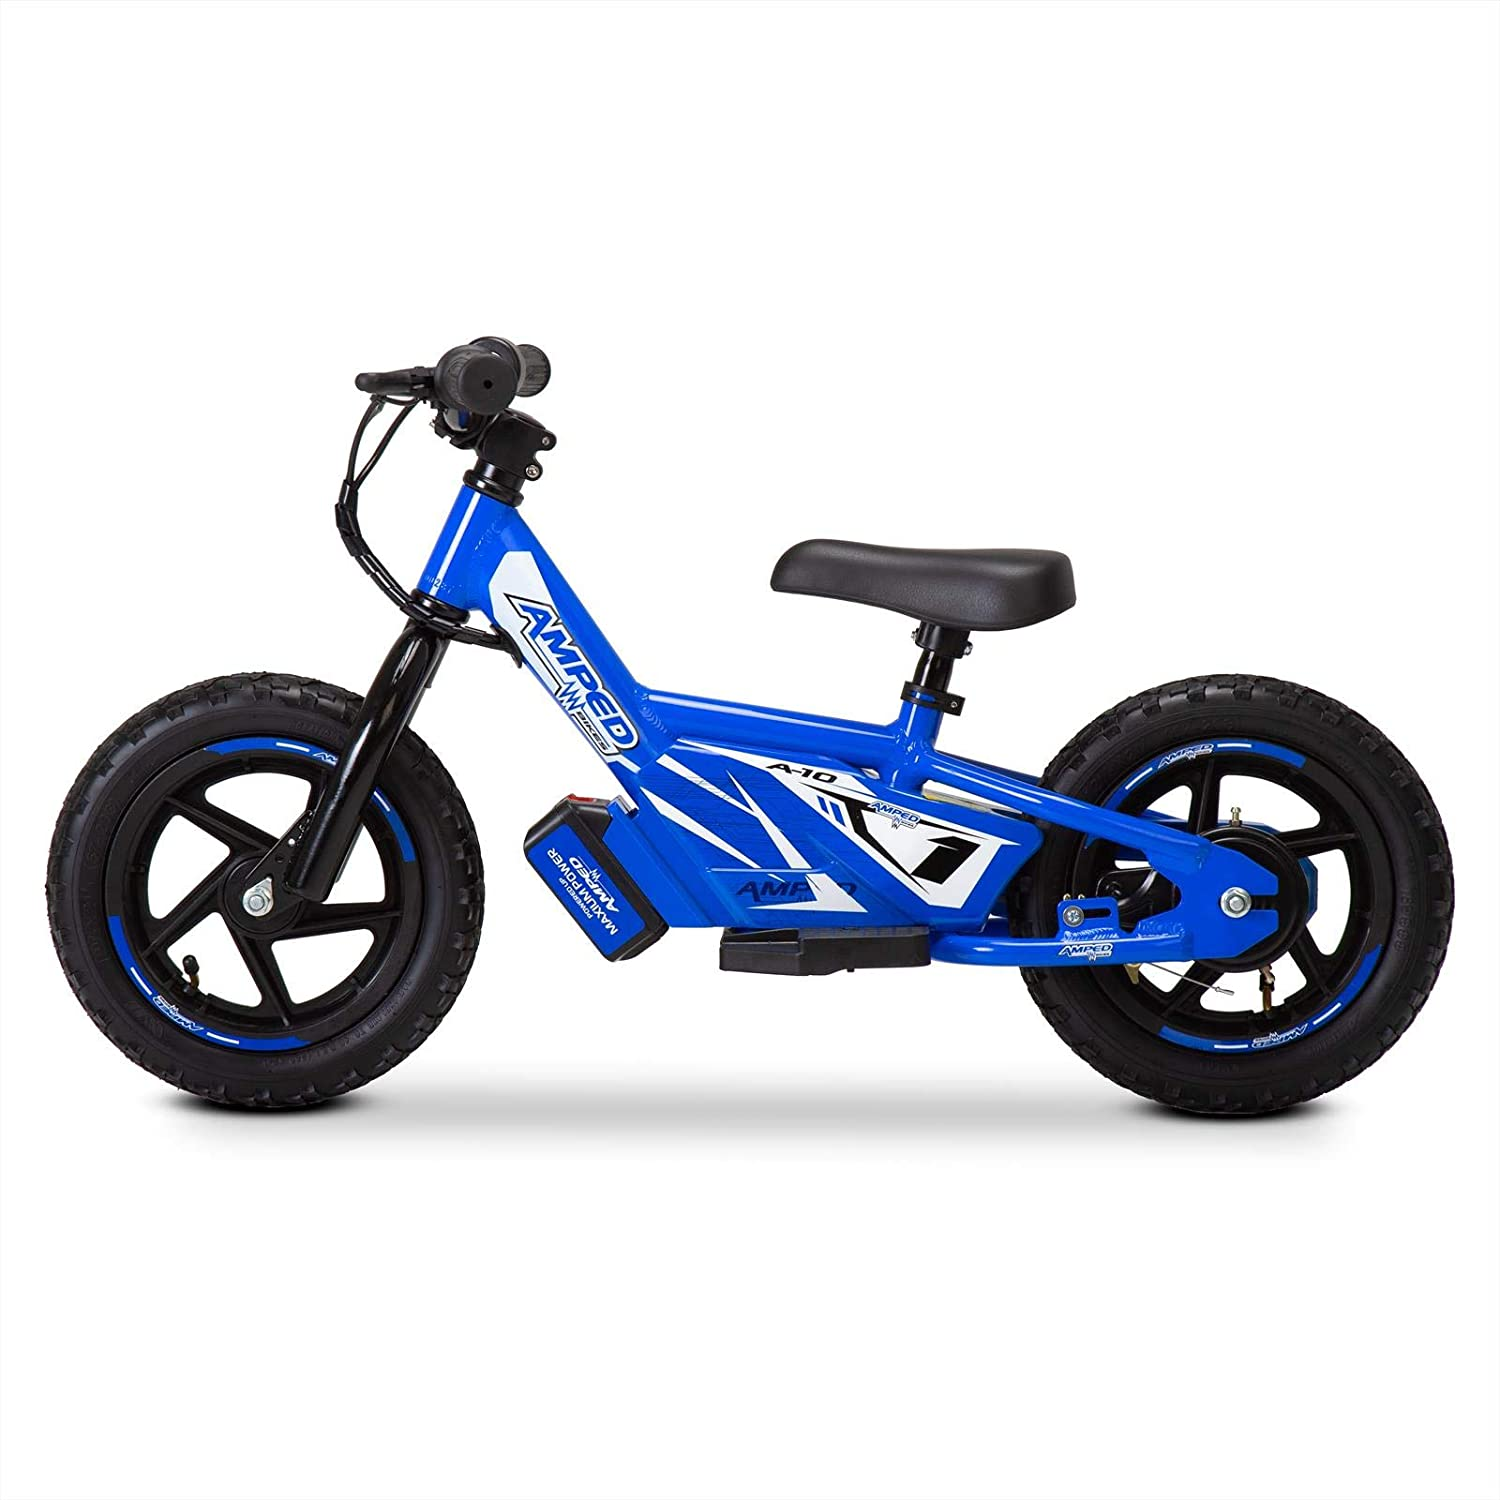 Amped A10 Electric Balance Bike in Blue, side view on a white background